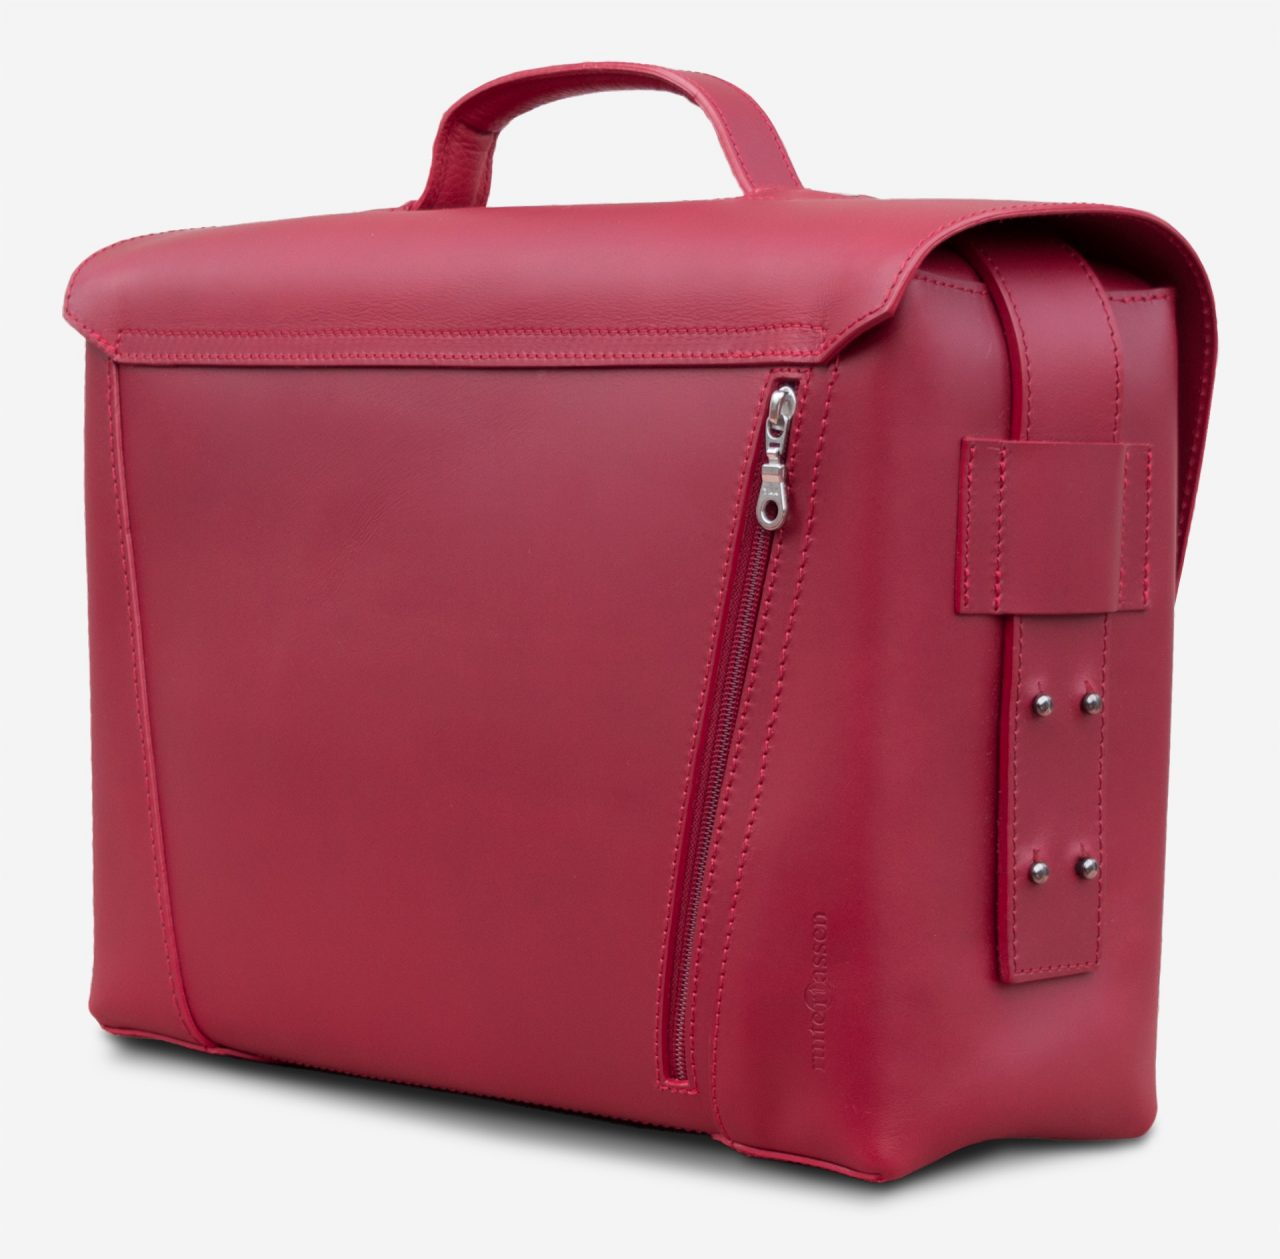 Back view of the large red vegetable-tanned leather briefcase bag with back pocket for women.